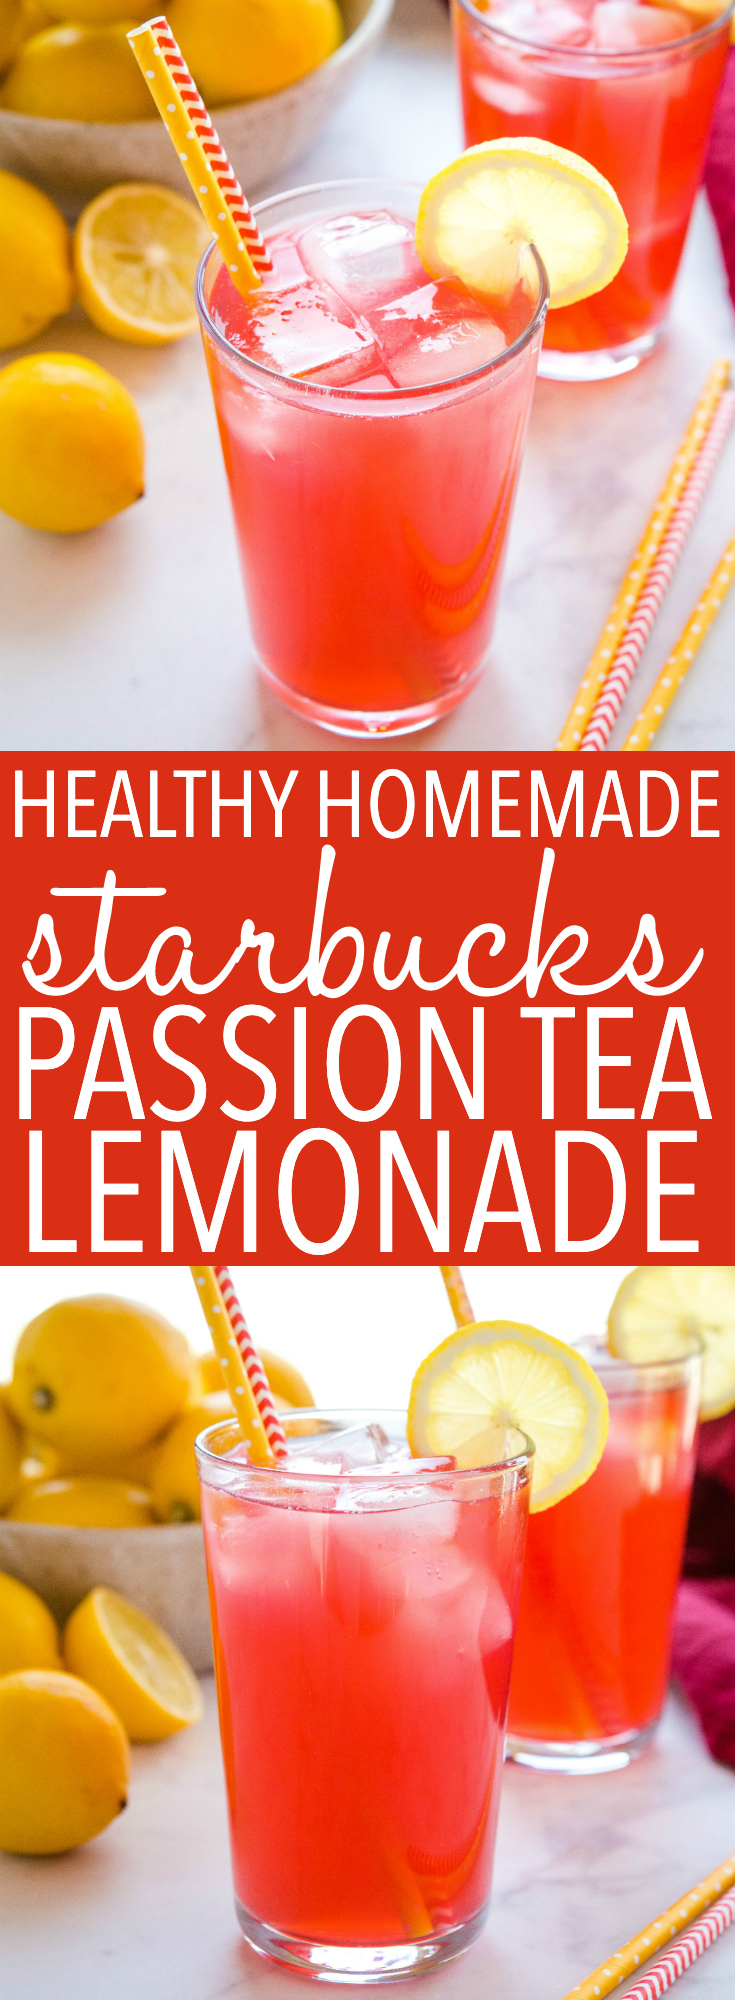 This Healthy Homemade Starbucks Passion Tea Lemonade is the perfect warm-weather drink that tastes even better than your favourite coffee shop iced tea! Easy to make and no refined sugar! Recipe from thebusybaker.ca! #starbucks #passiontealemonade #lemonade #drink #icedtea #coffee #summer #spring #homemade #healthy #refinedsugarfree via @busybakerblog